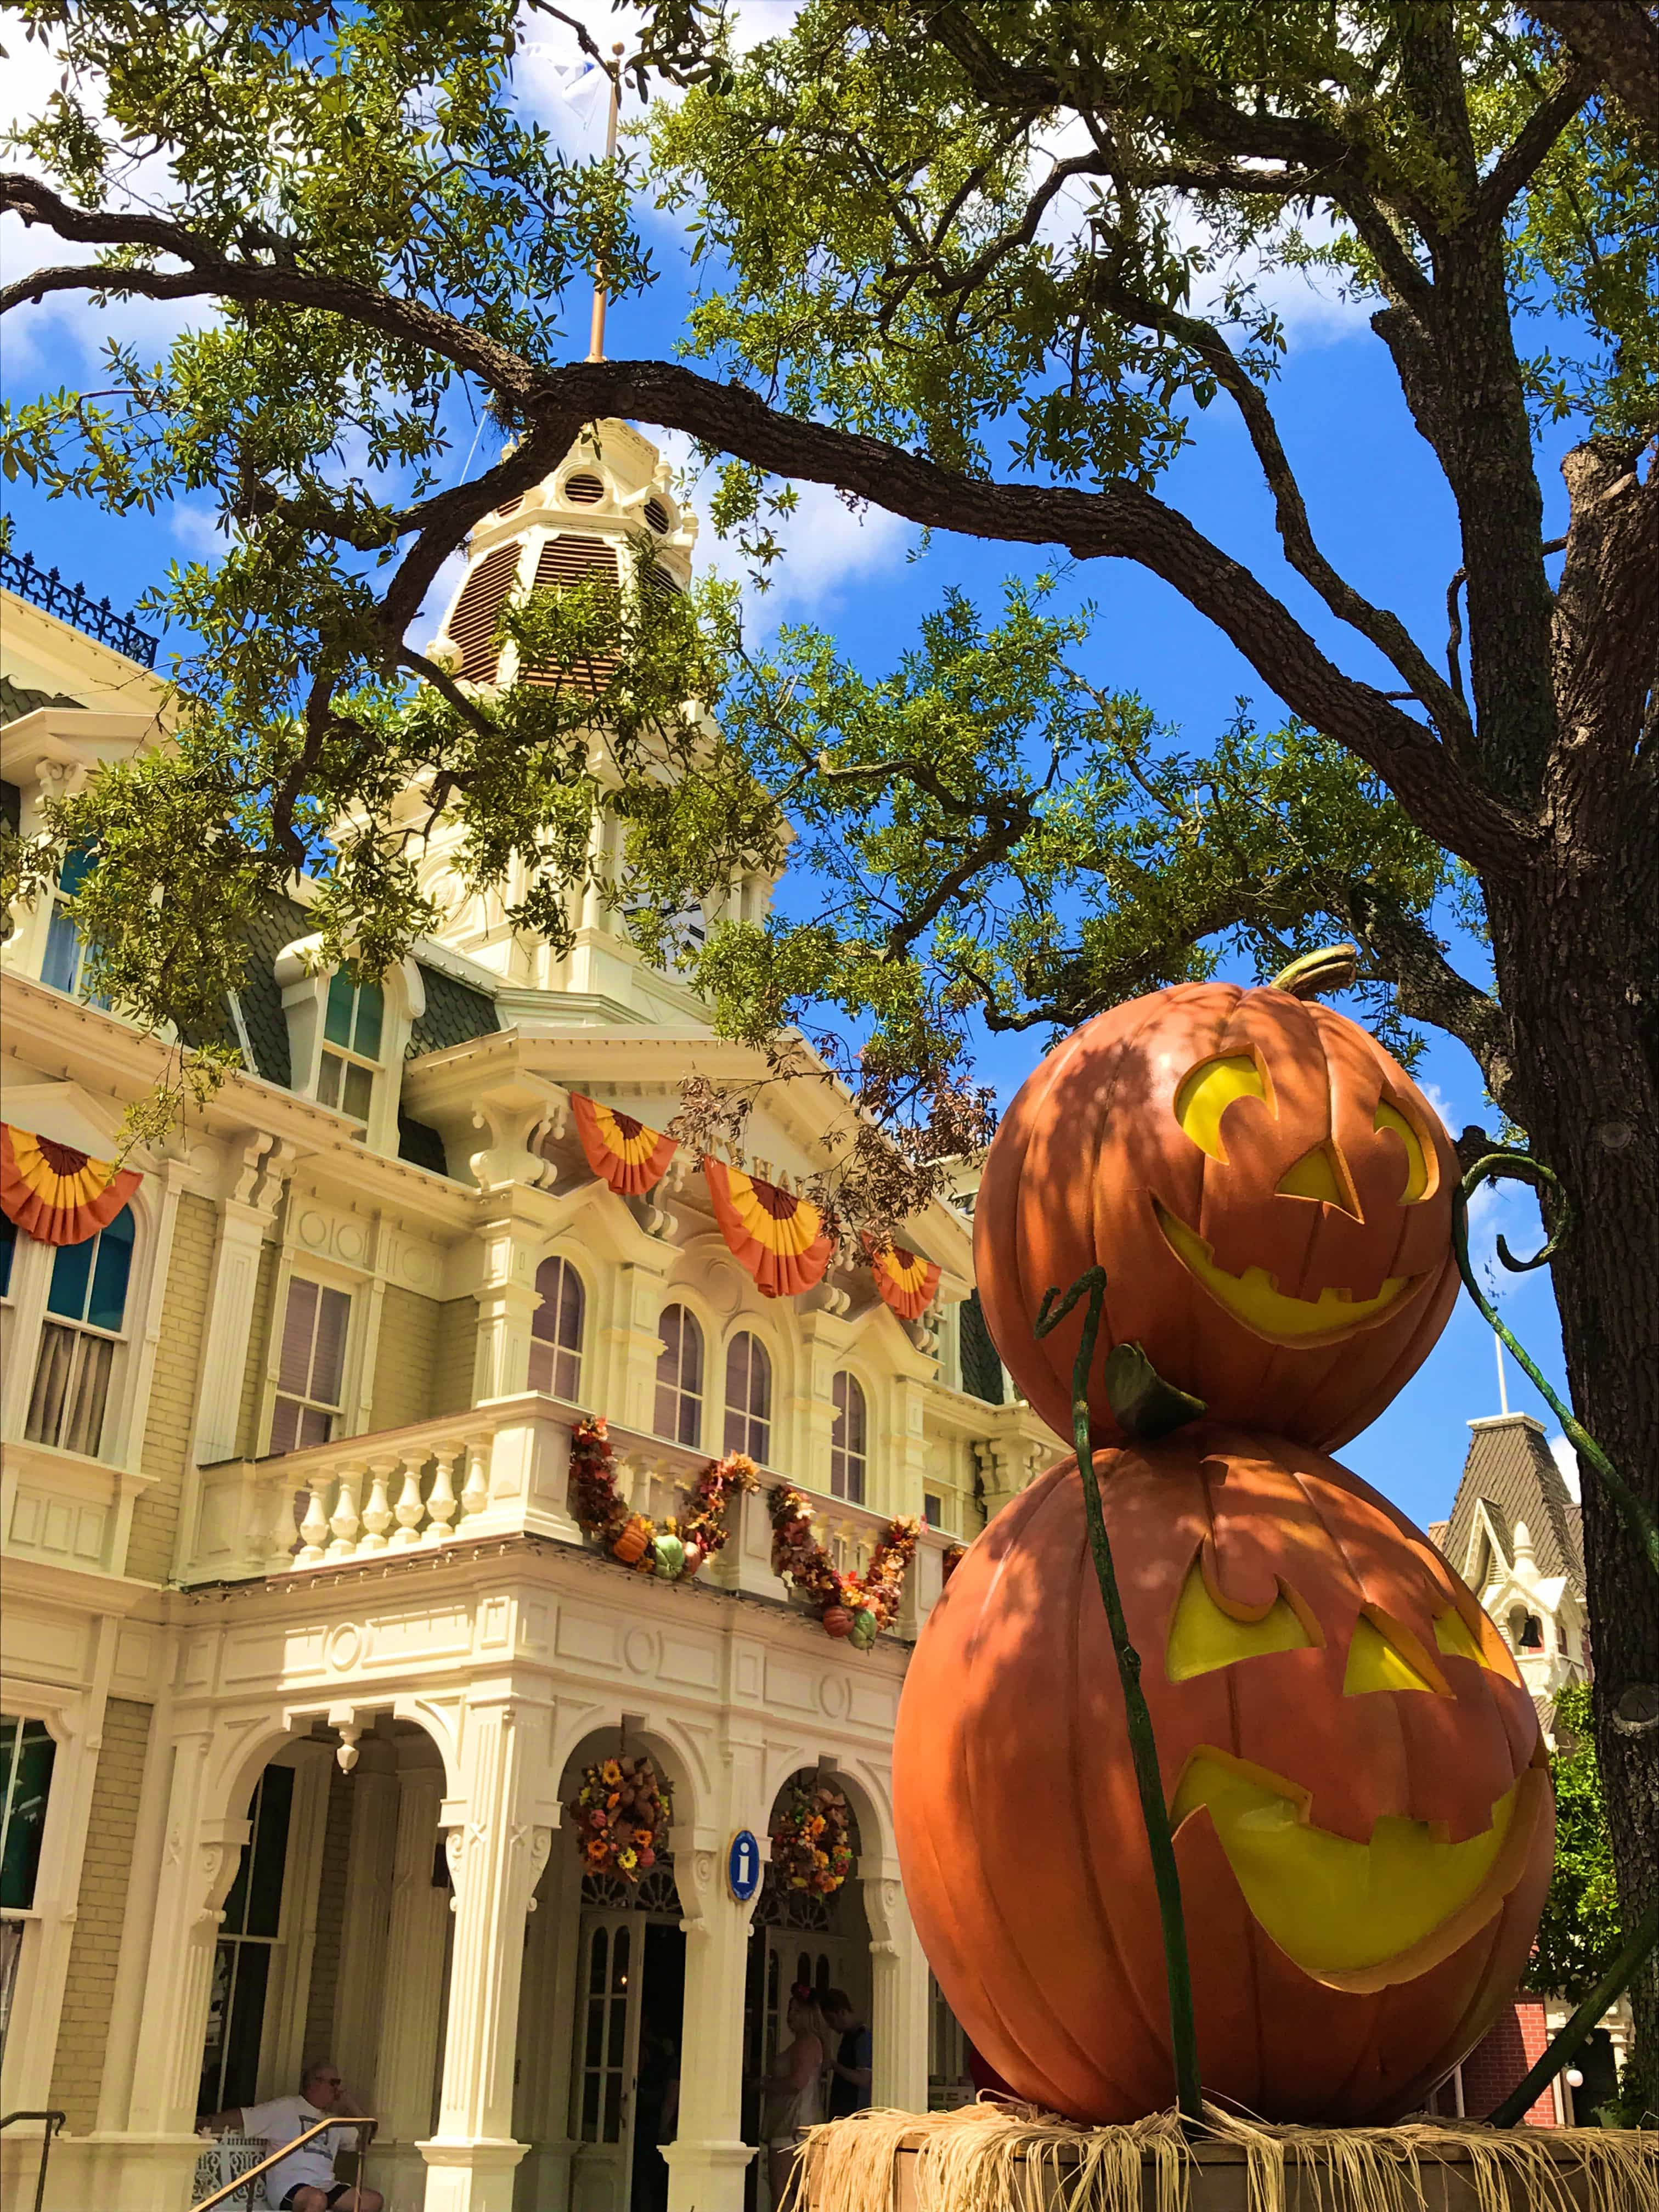 as always not so scary halloween party was a highlight of our trip we arrived around 330 pm and the atmosphere was already electric